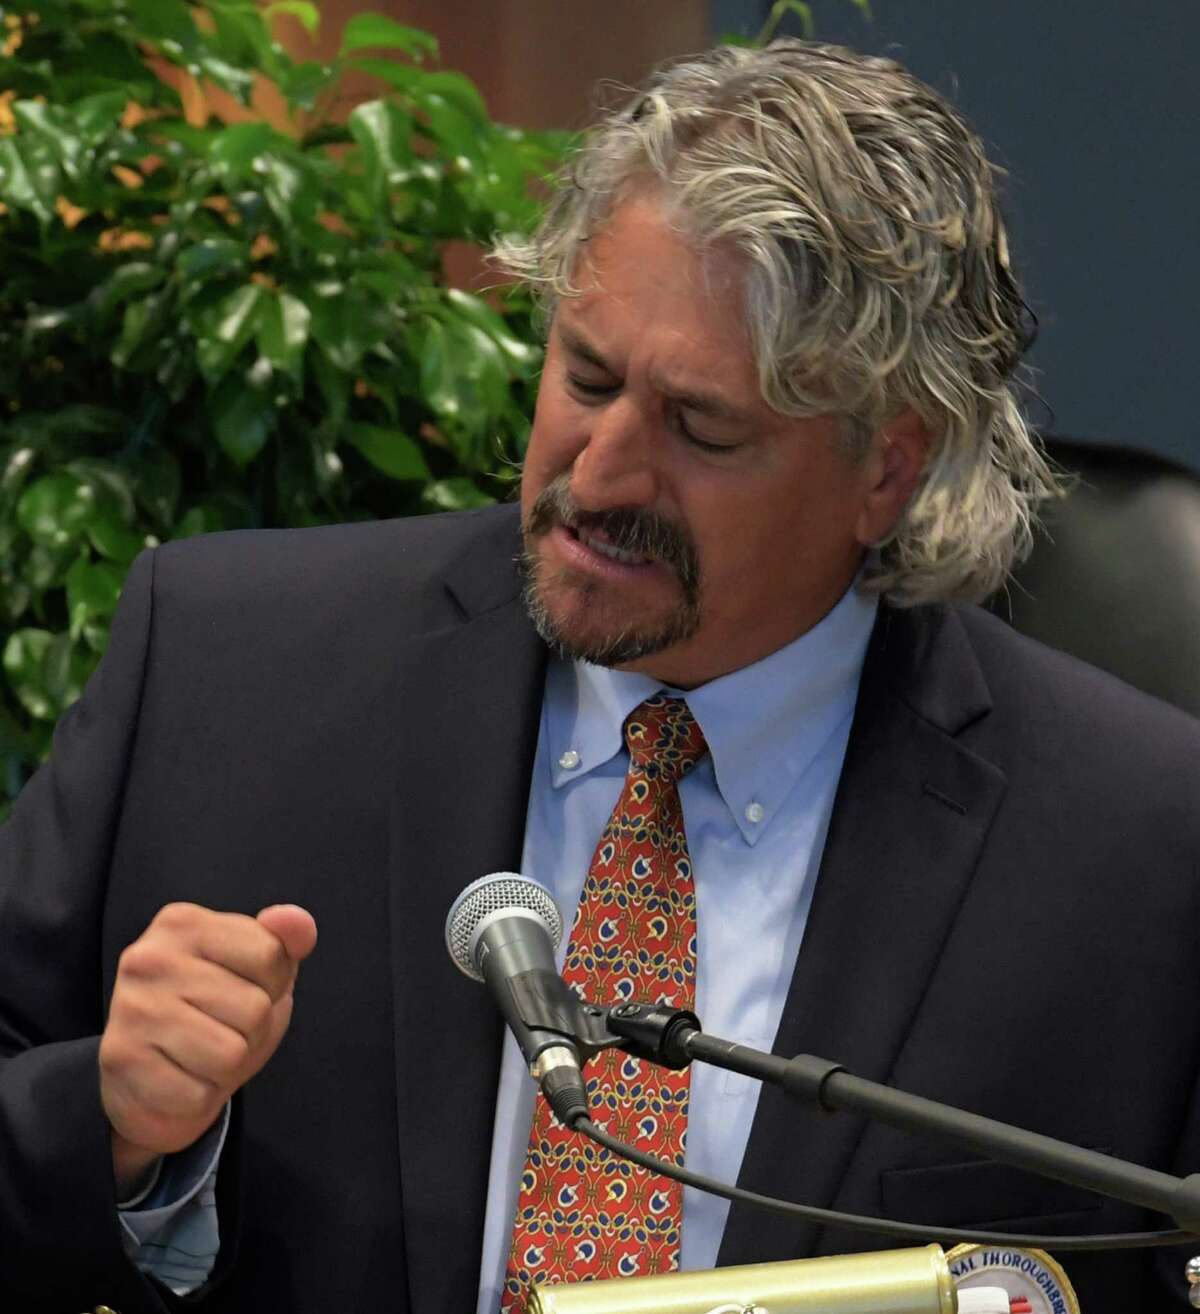 Trainer Steve Asmussen gives his acceptance speech as his family watches at the the National Museum of Racing and Hall of Fame inductions at the Fasig-Tipton sales pavilion Friday Aug. 12, 2016 in Saratoga Springs, N.Y. (Skip Dickstein/Times Union)